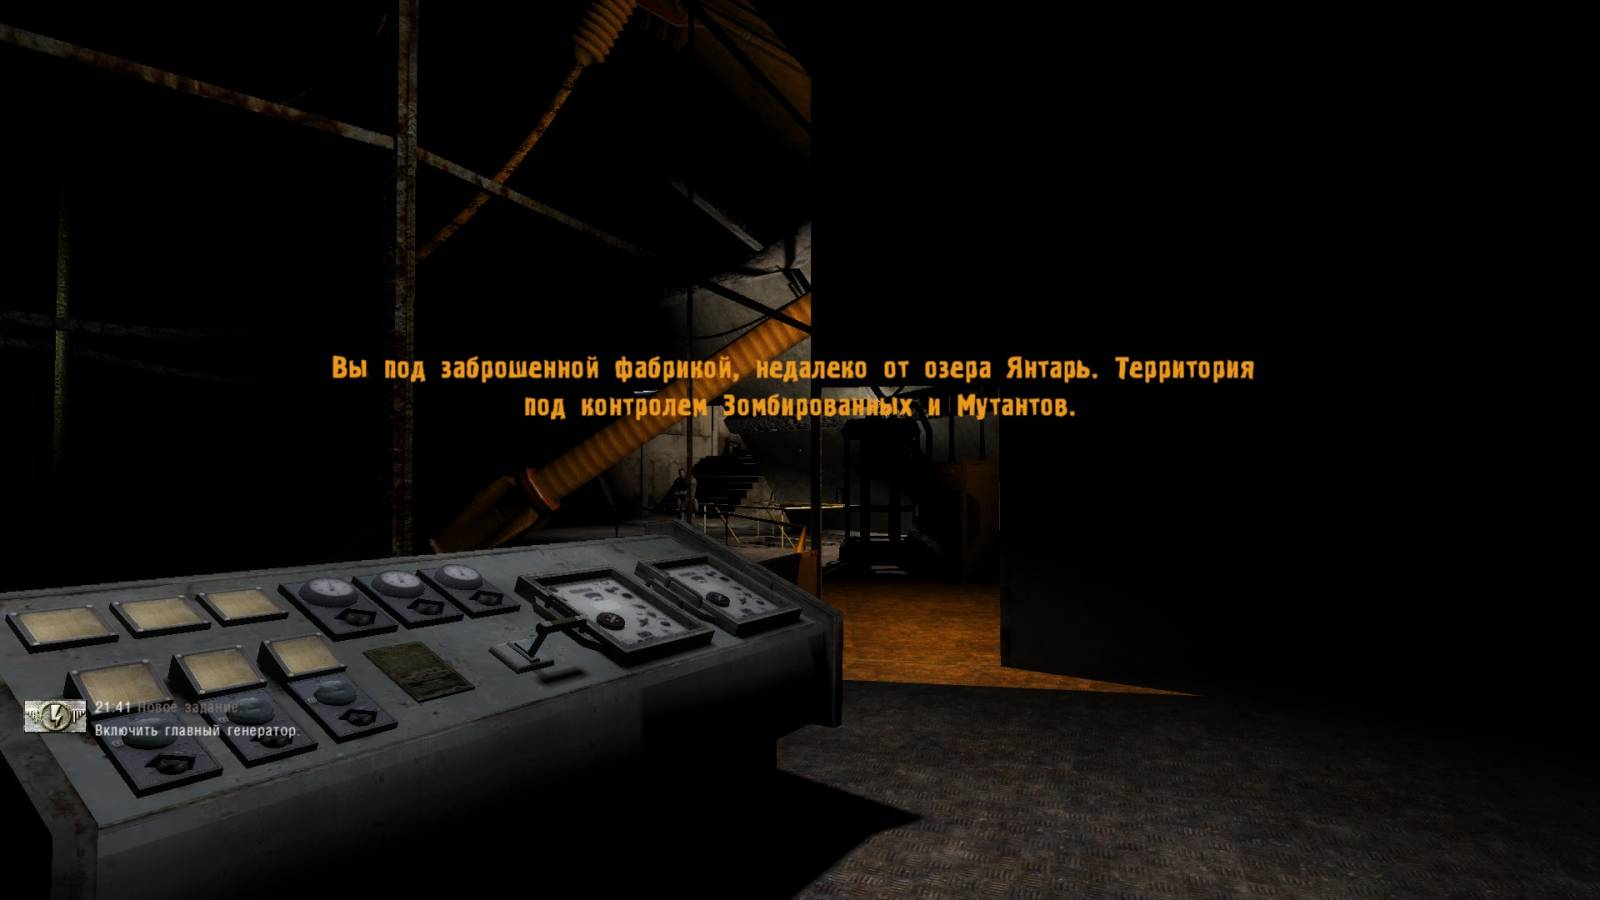 S.T.A.L.K.E.R.: Call of Pripyat - В Западне